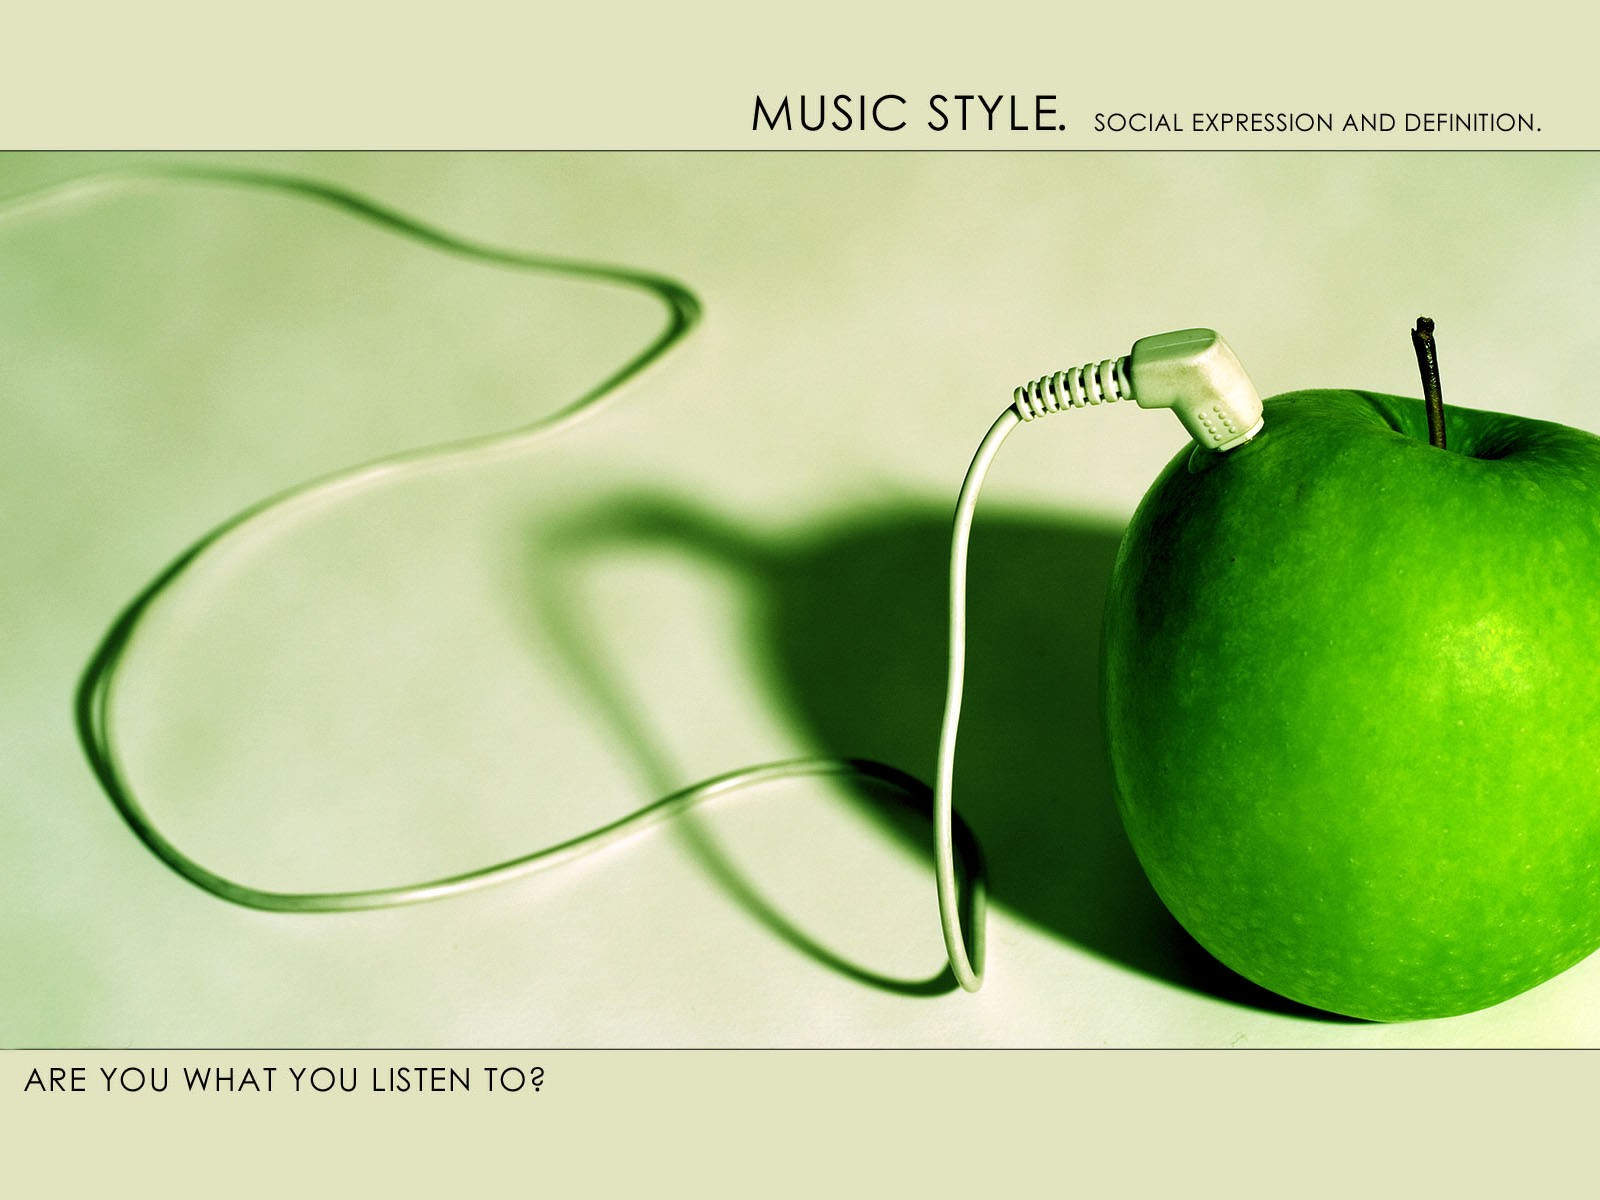 Green Apple Is Live Music Energy Great Dj Background